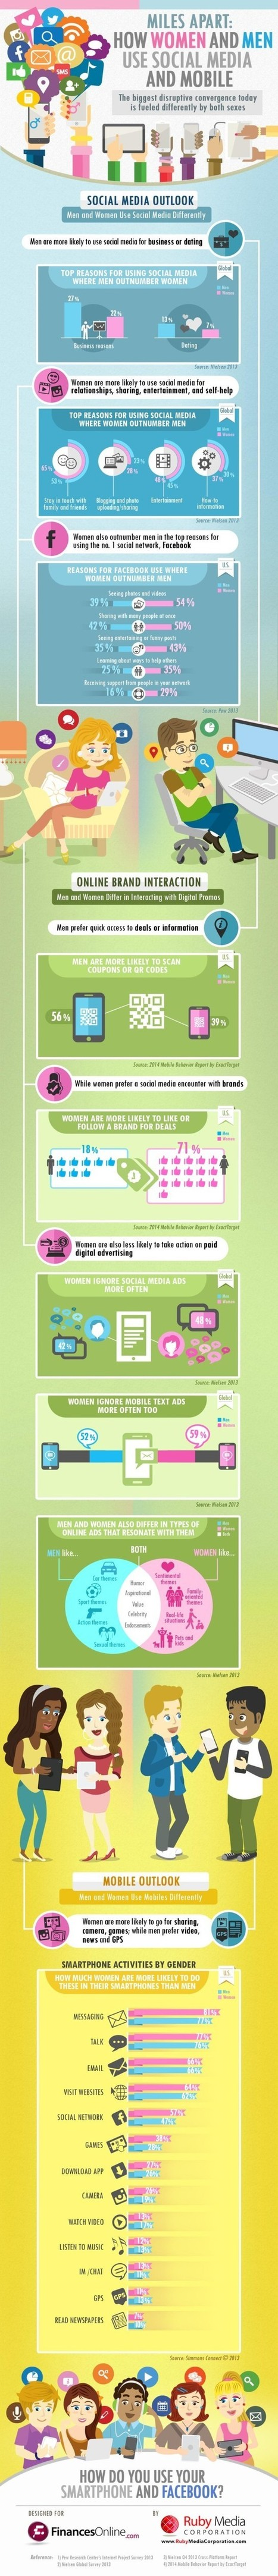 How Women and Men Use Social Media and Mobile Differently - Marketing Technology Blog | The Fish Report | Scoop.it